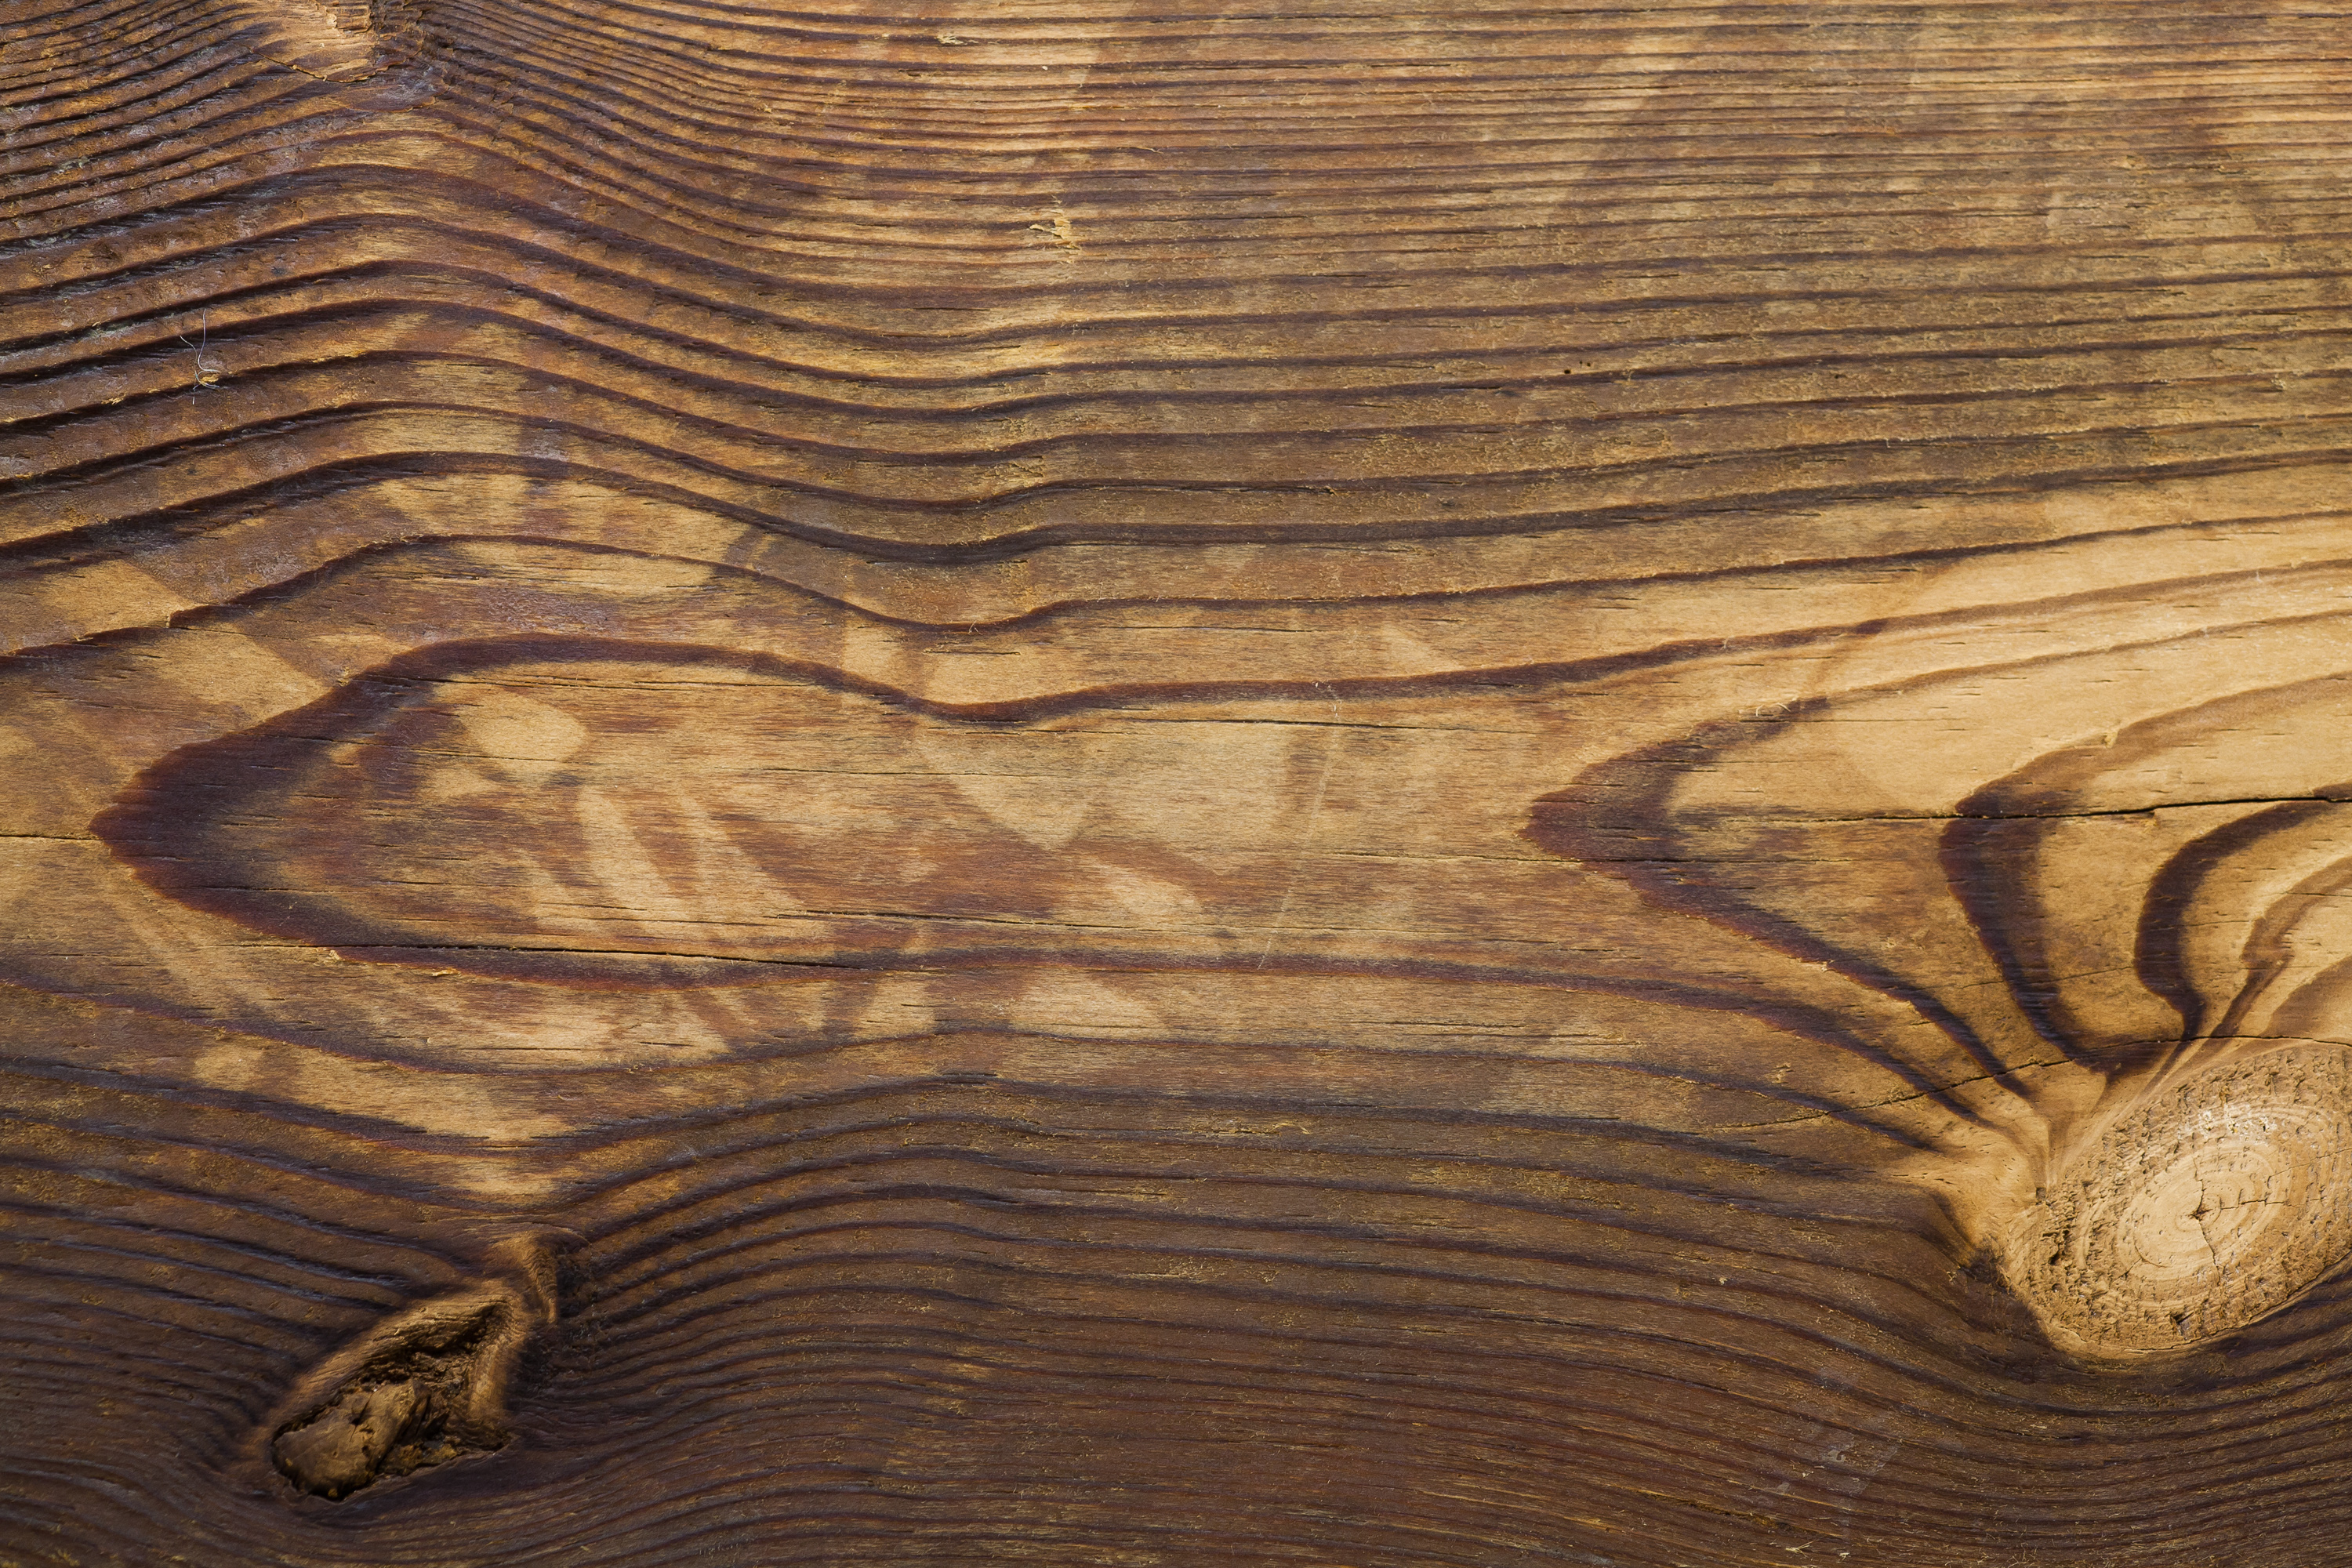 Wood Grain Widescreen Wallpaper 60318 3000x2000 Px